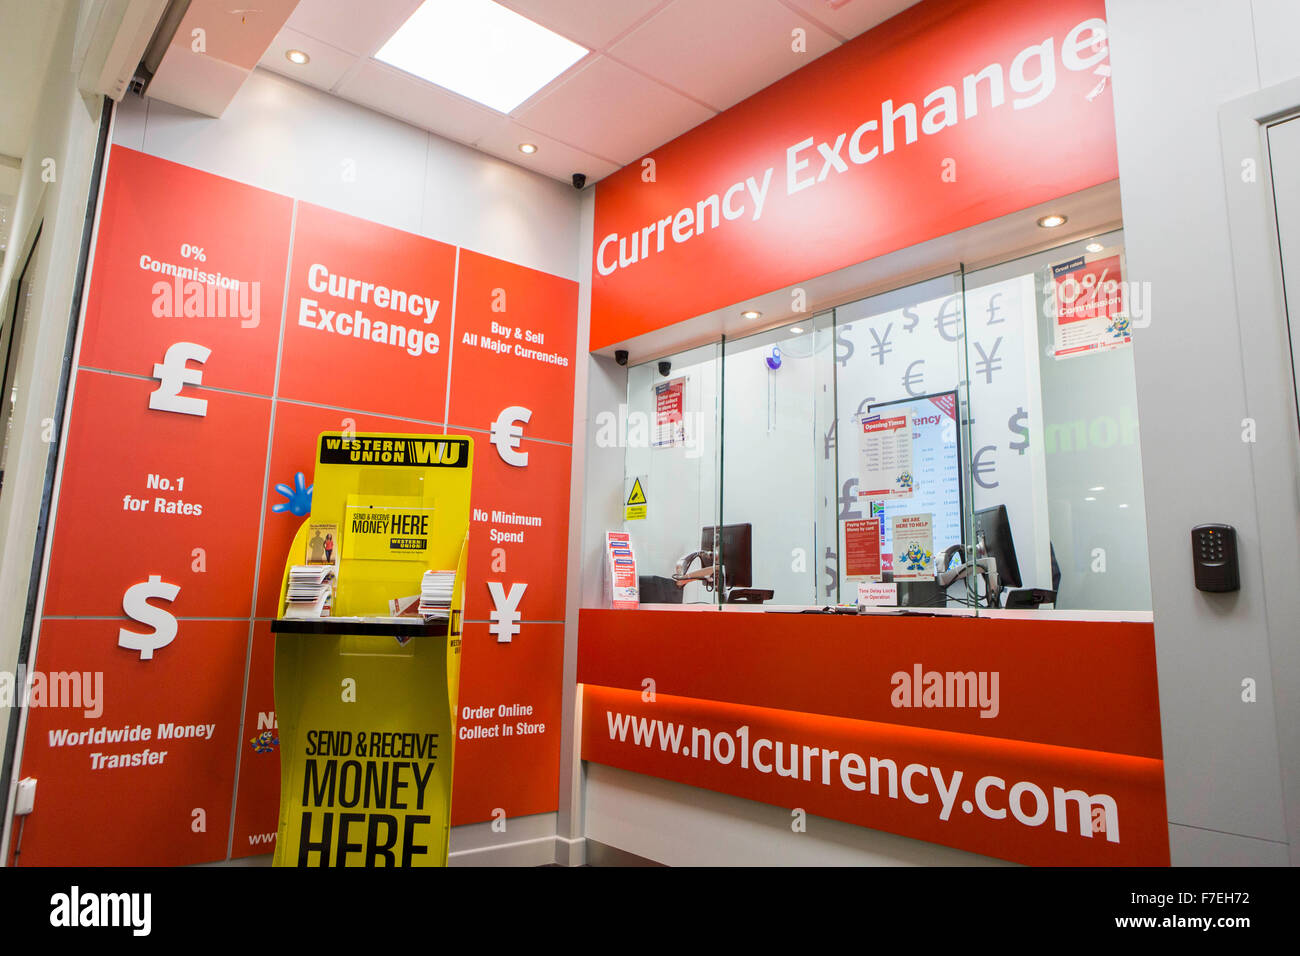 Currency Exchange Stock Photos Amp Currency Exchange Stock Images Alamy